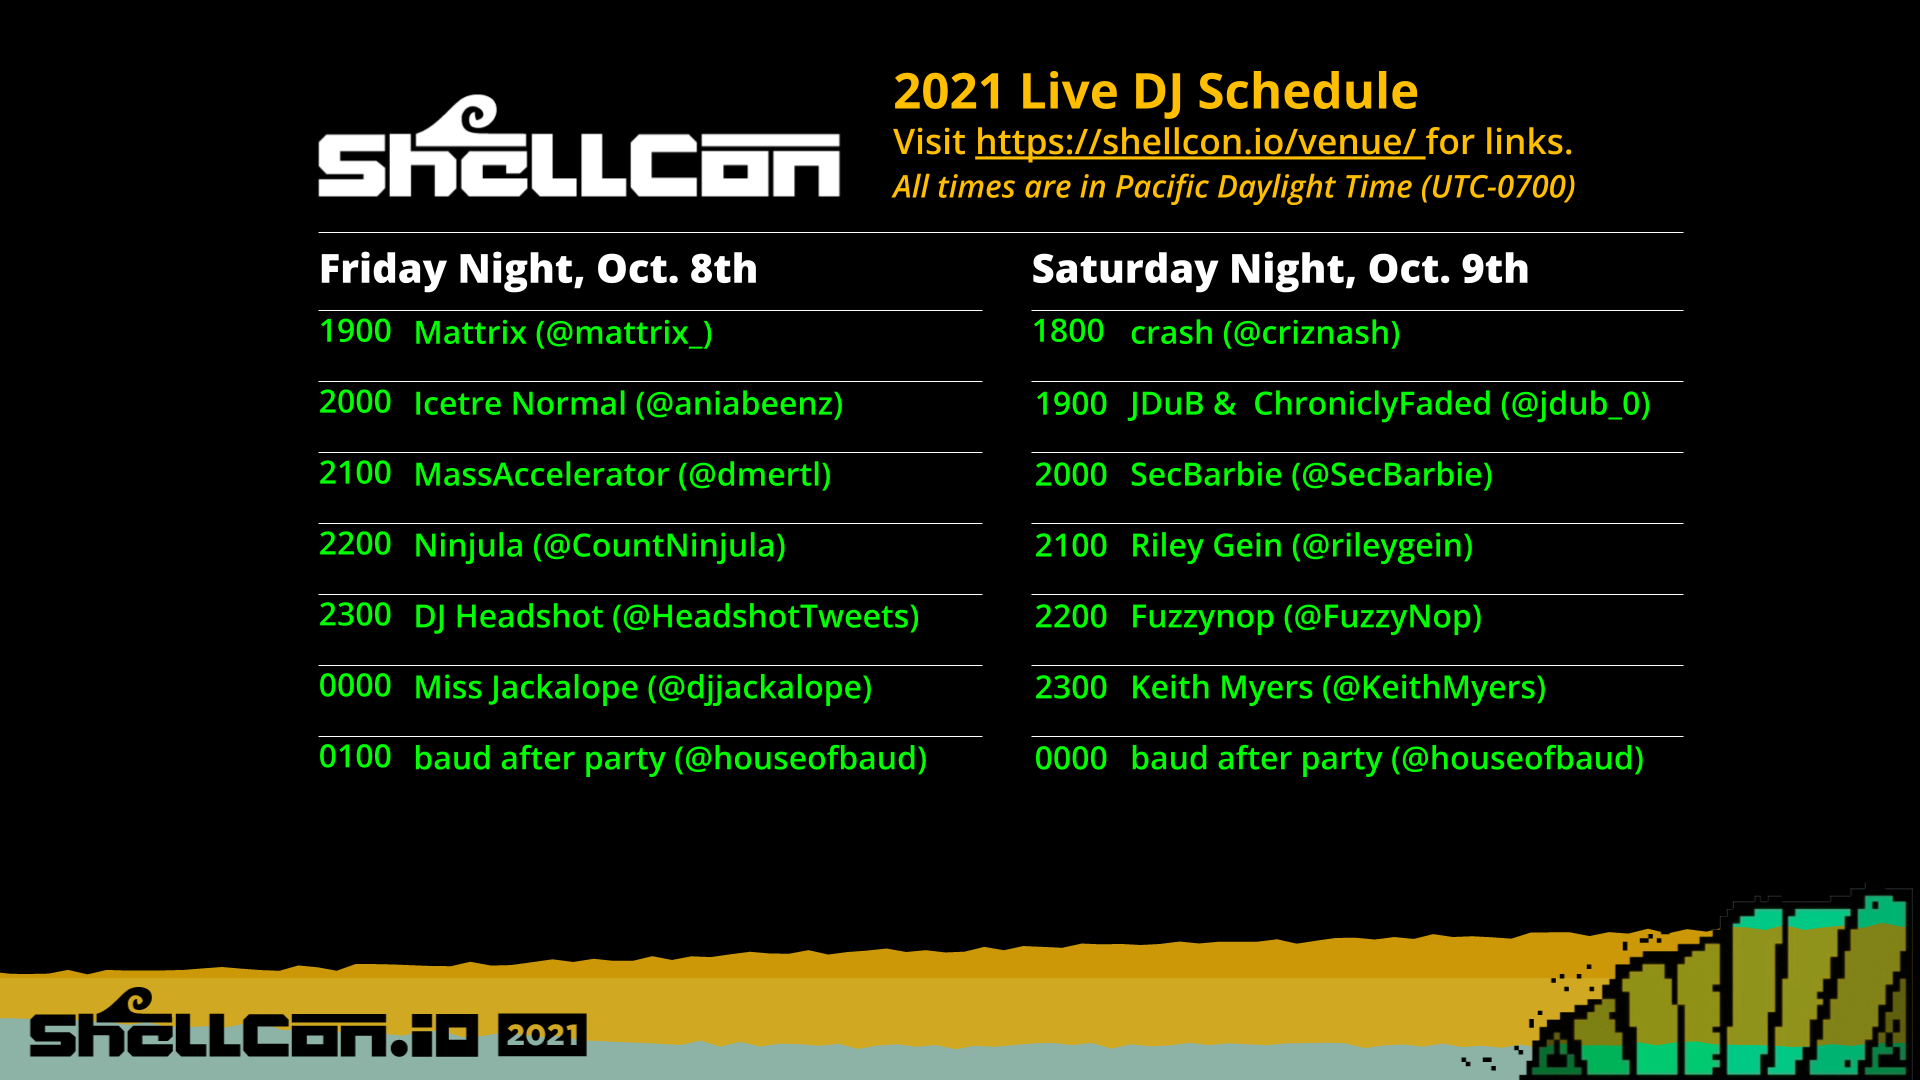 Schedule of DJs